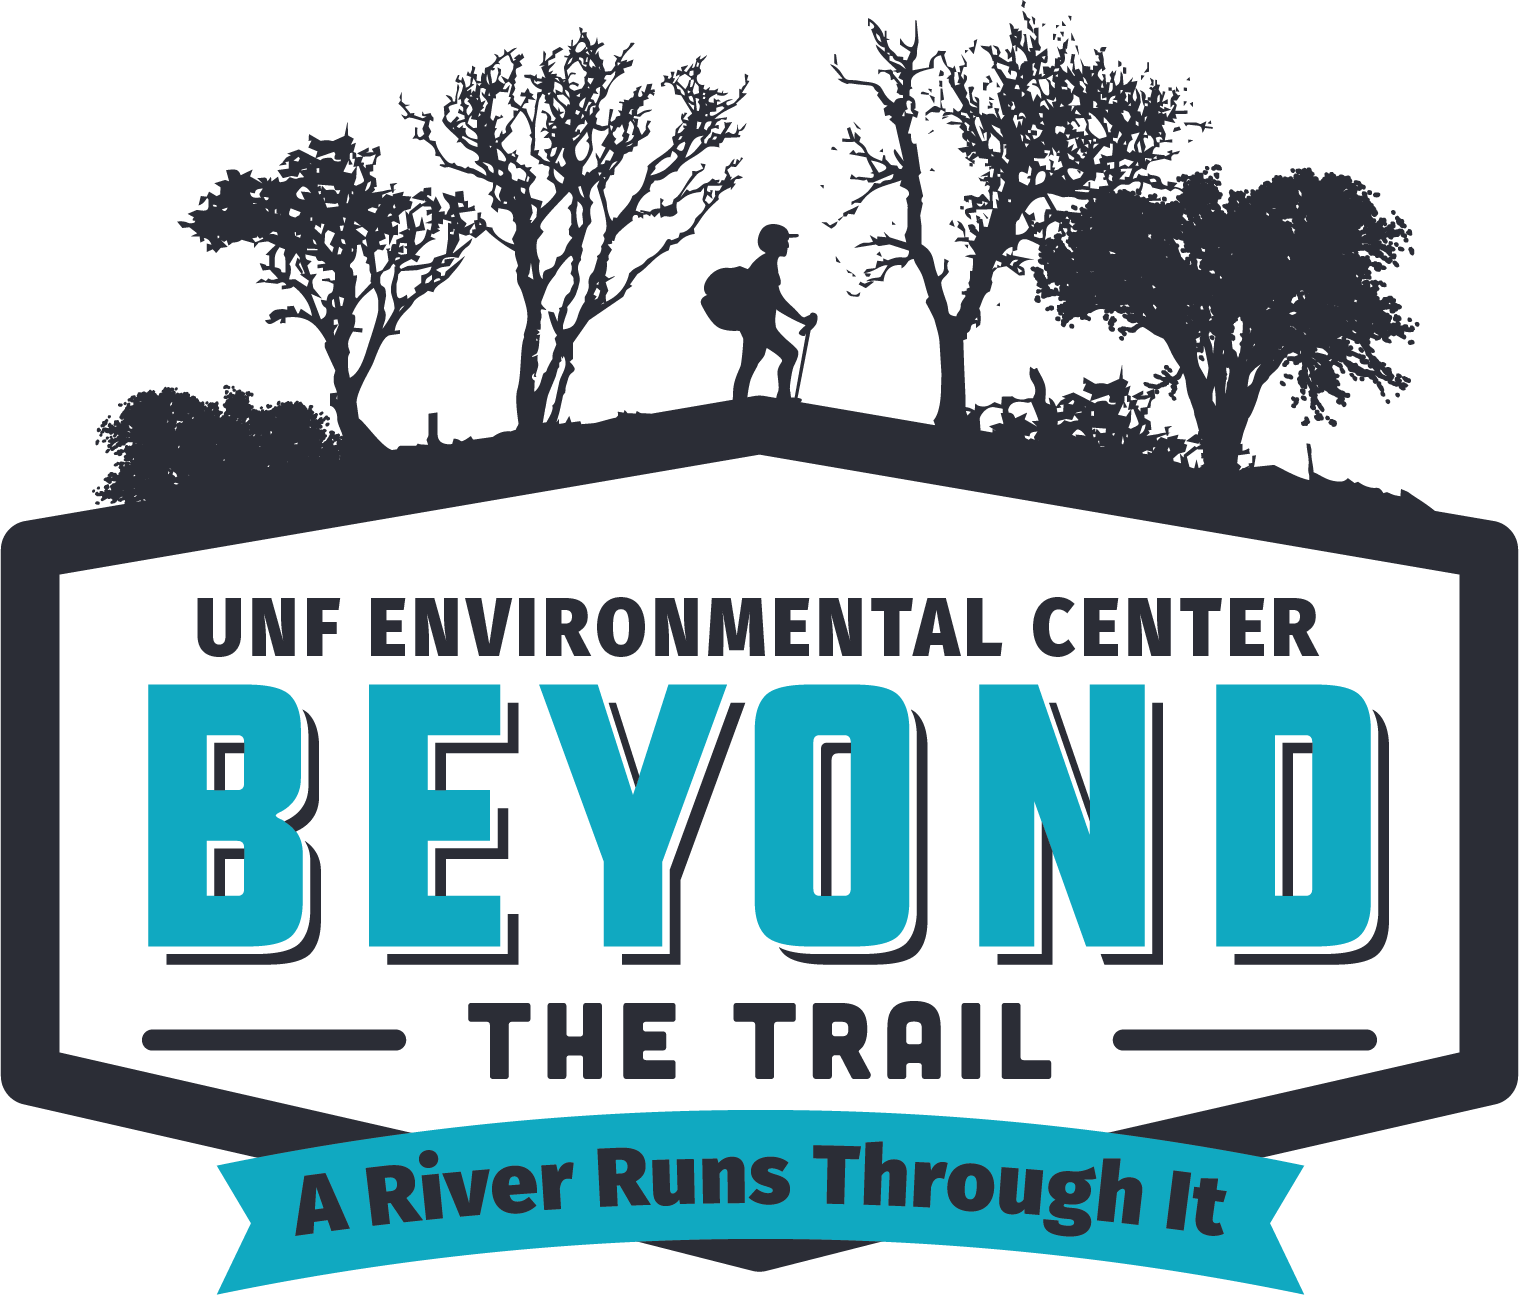 UNF Environmental Center Beyond the trail a river runs through it logo